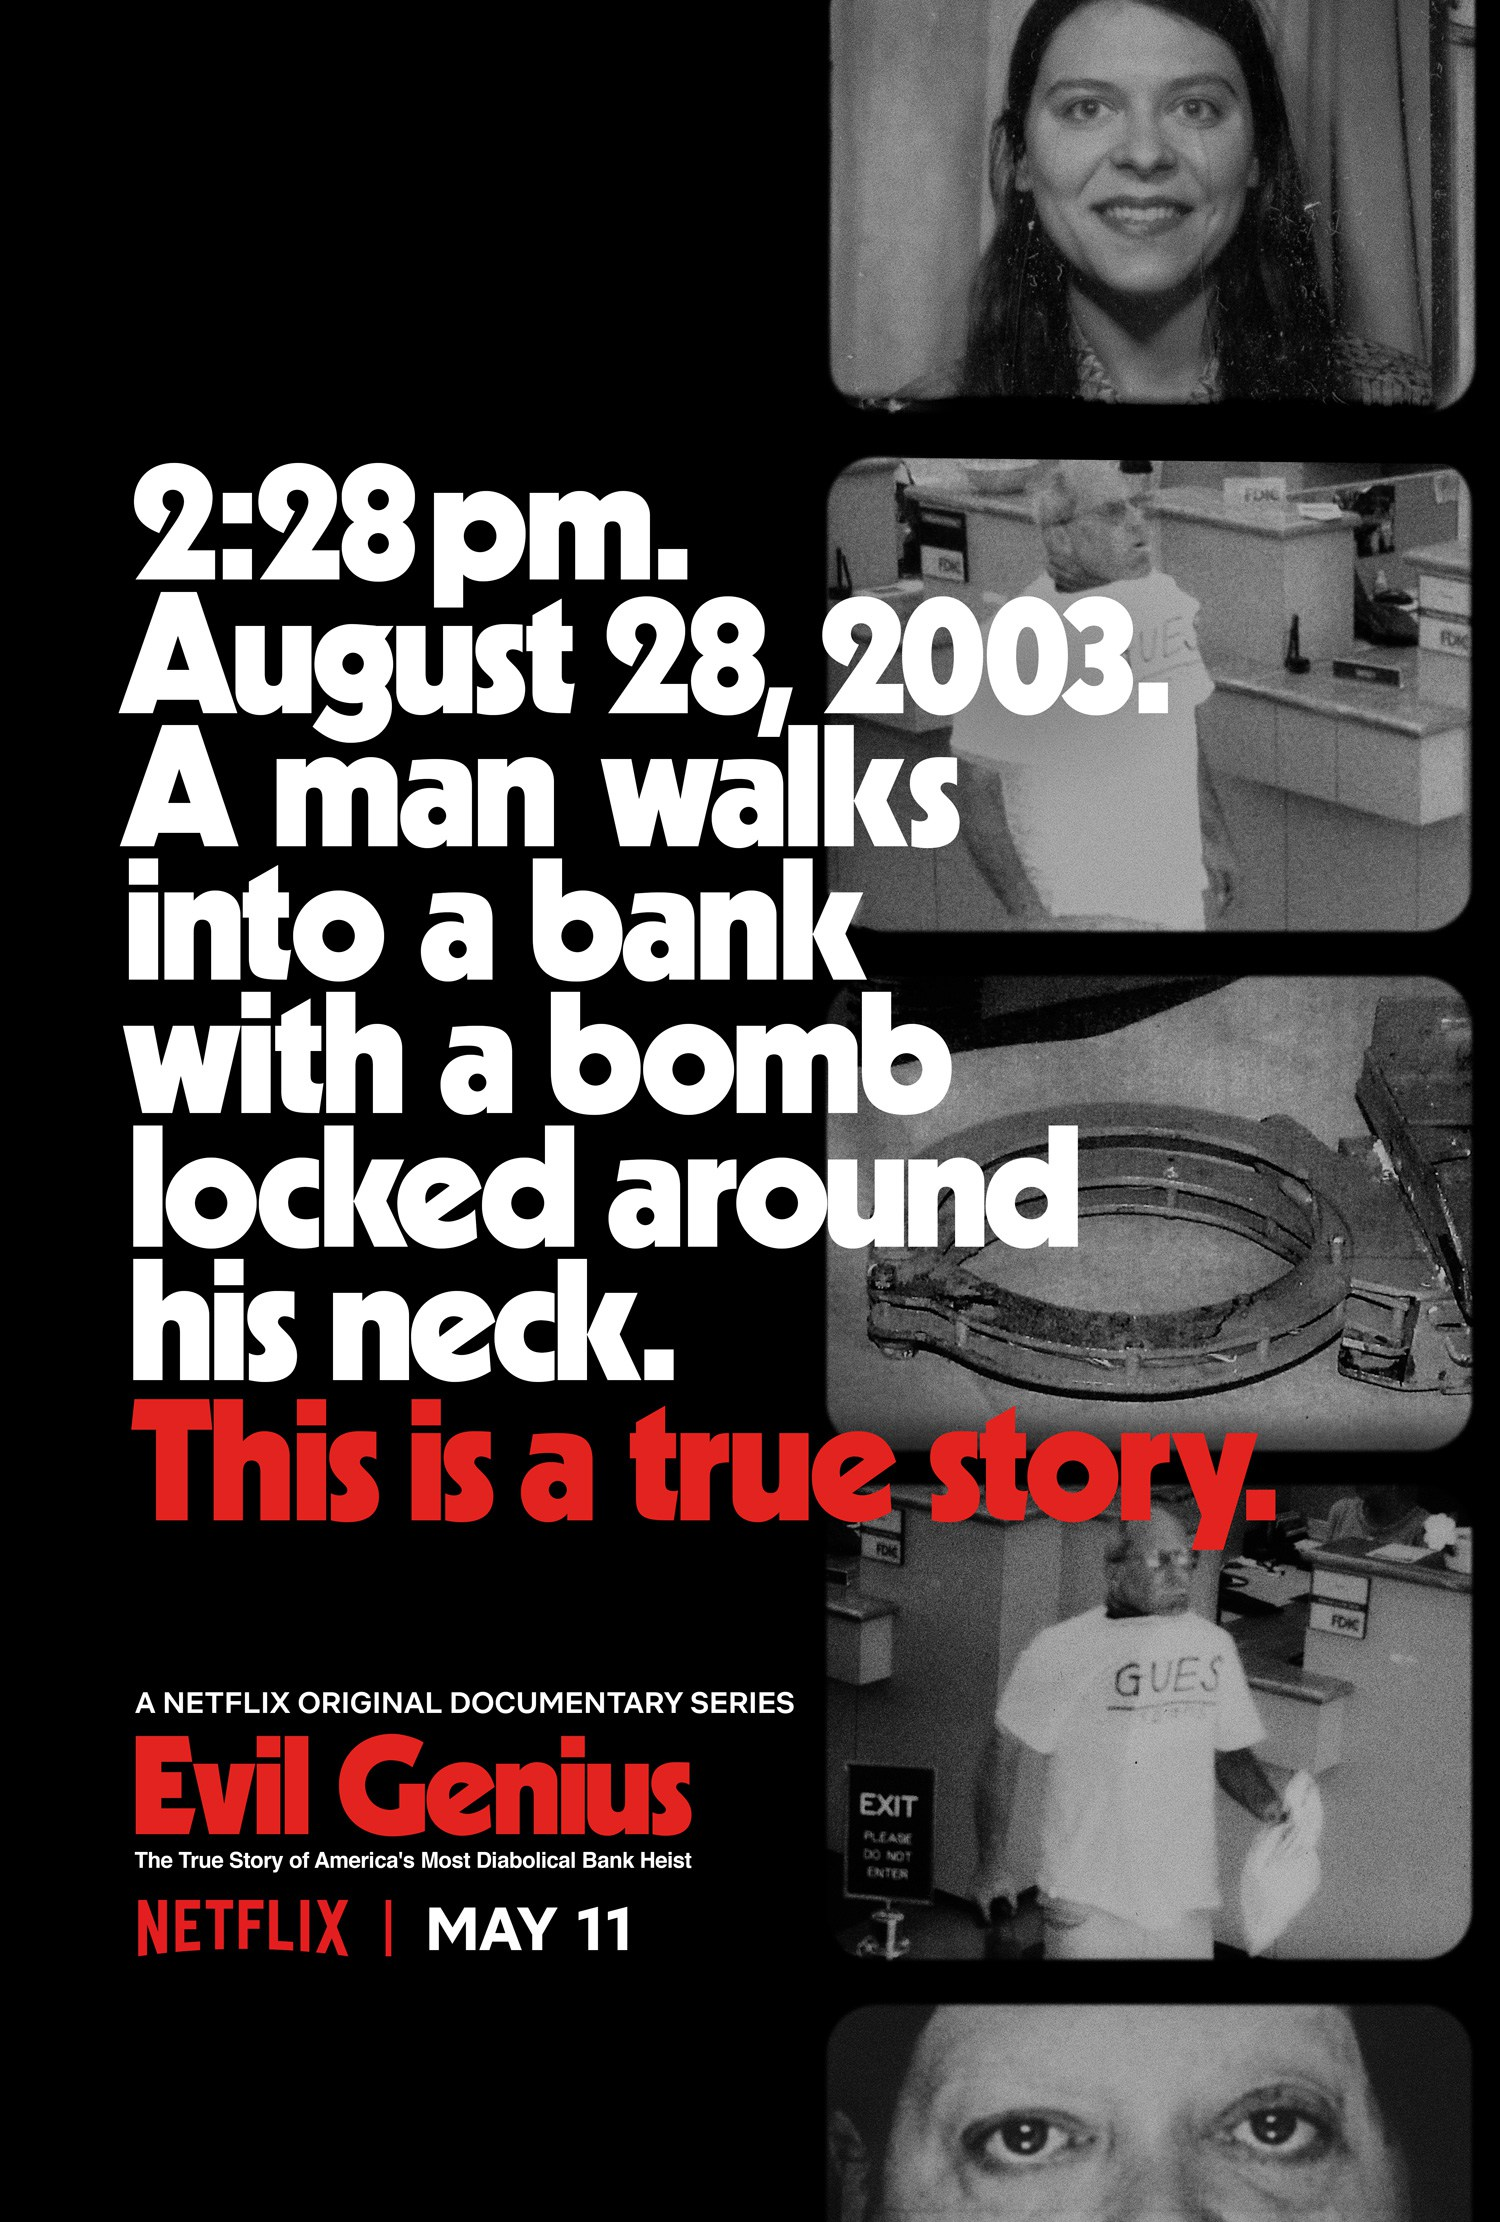 Evil%20Genius%3A%20The%20True%20Story%20of%20America%27s%20Most%20Diabolical%20Bank%20Heist